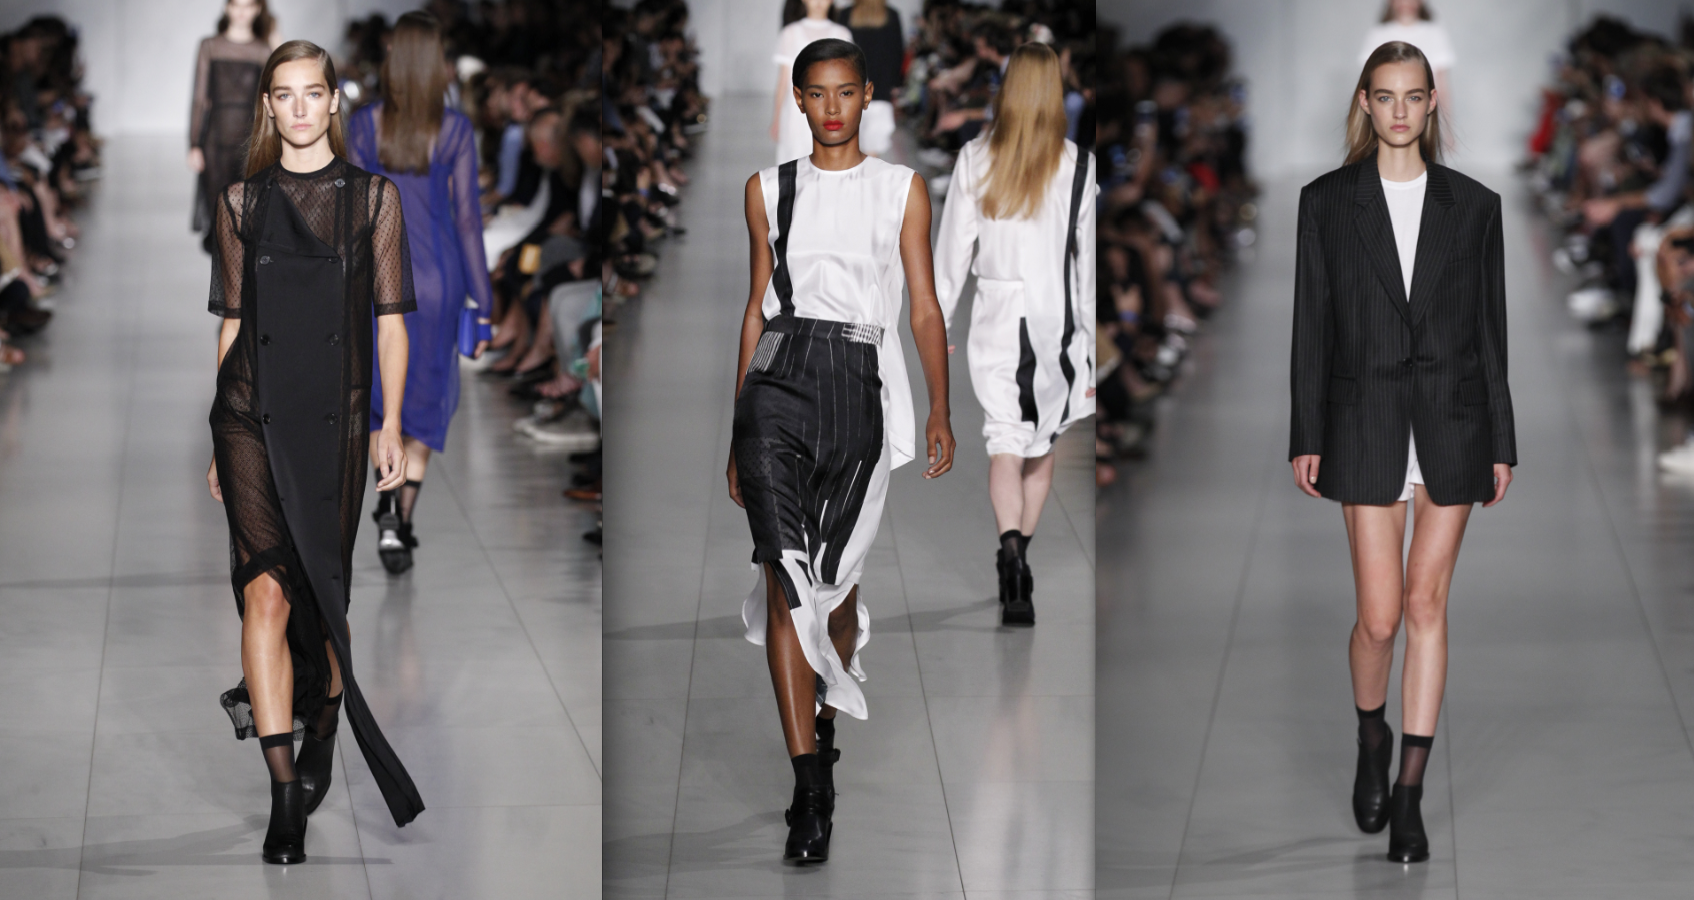 Looks from DKNY's spring/summer 2016 collection